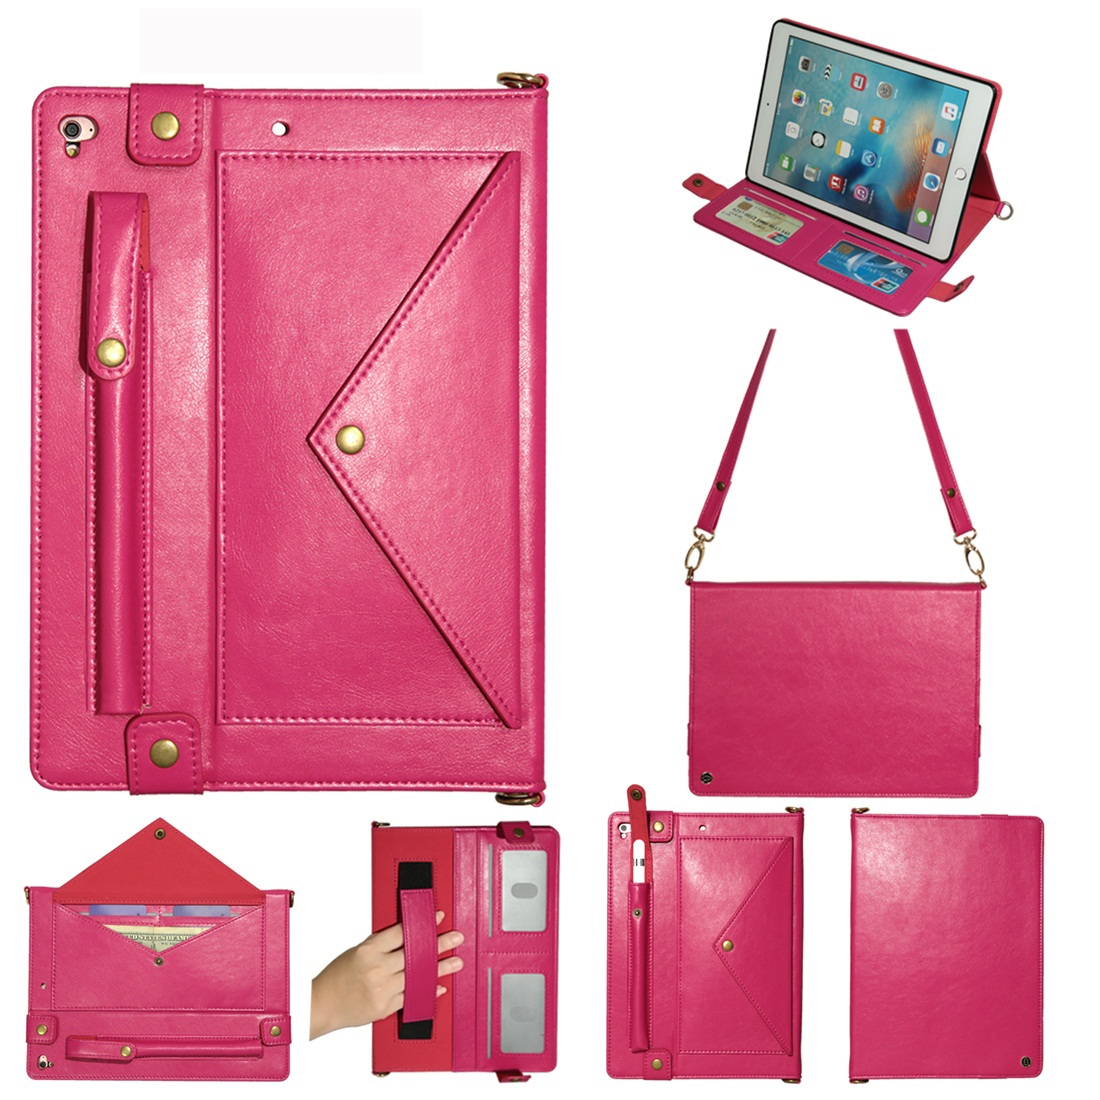 Leather iPad 9.7 Case (2018)/(2017), Air/ Air 2/ Pro 9.7 inch, Pen Holders, Strap (Rose)